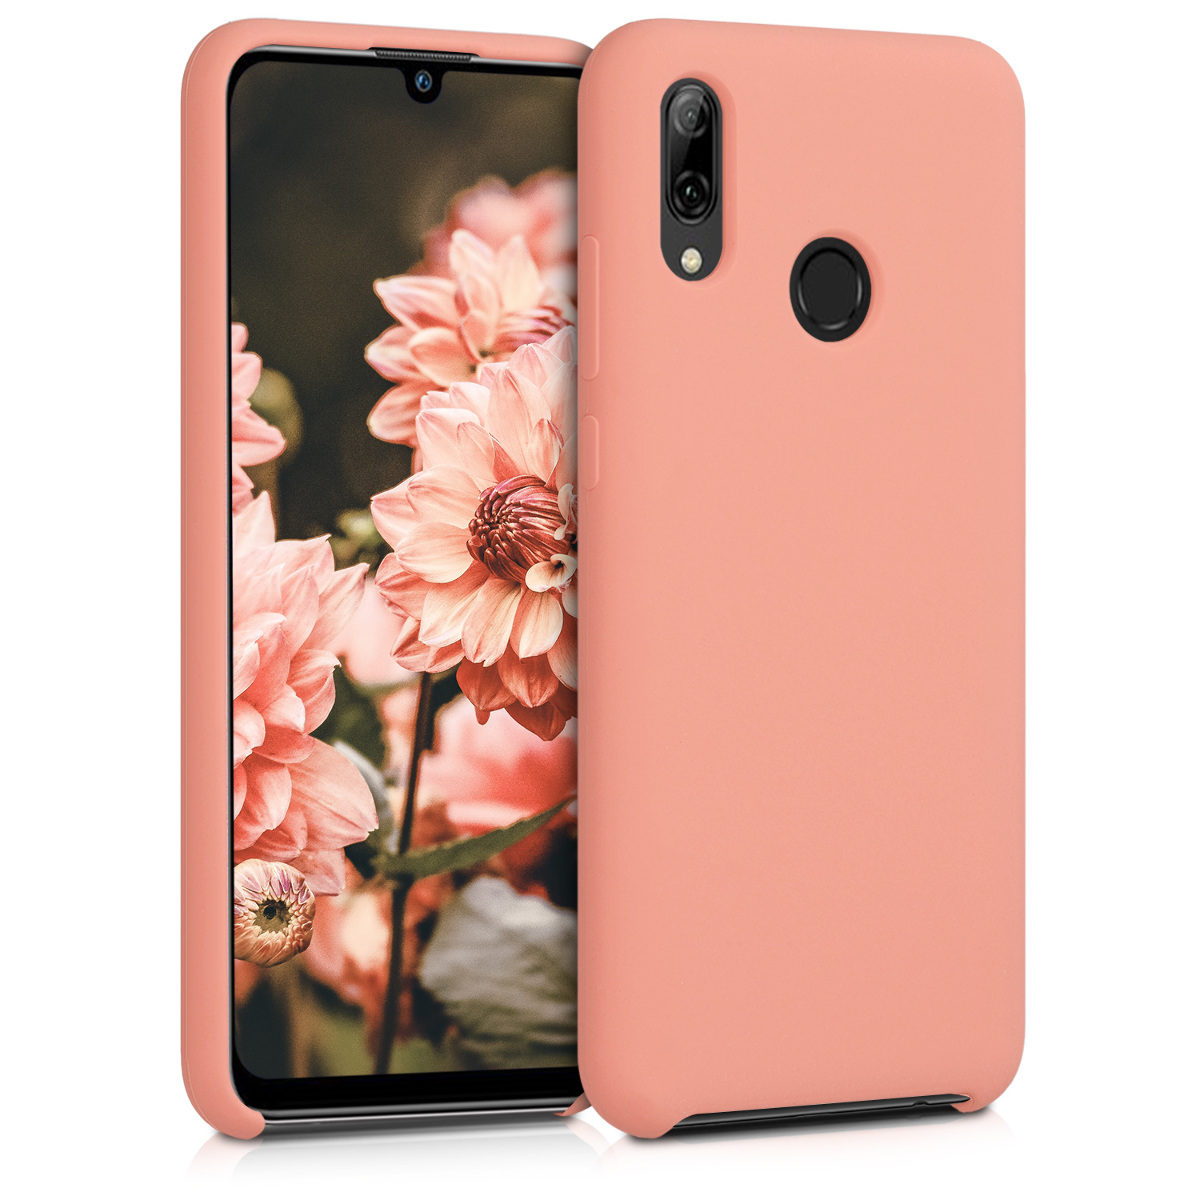 KW Θήκη Σιλικόνης Huawei P Smart 2019 - Soft Flexible Rubber - Coral (47824.76)